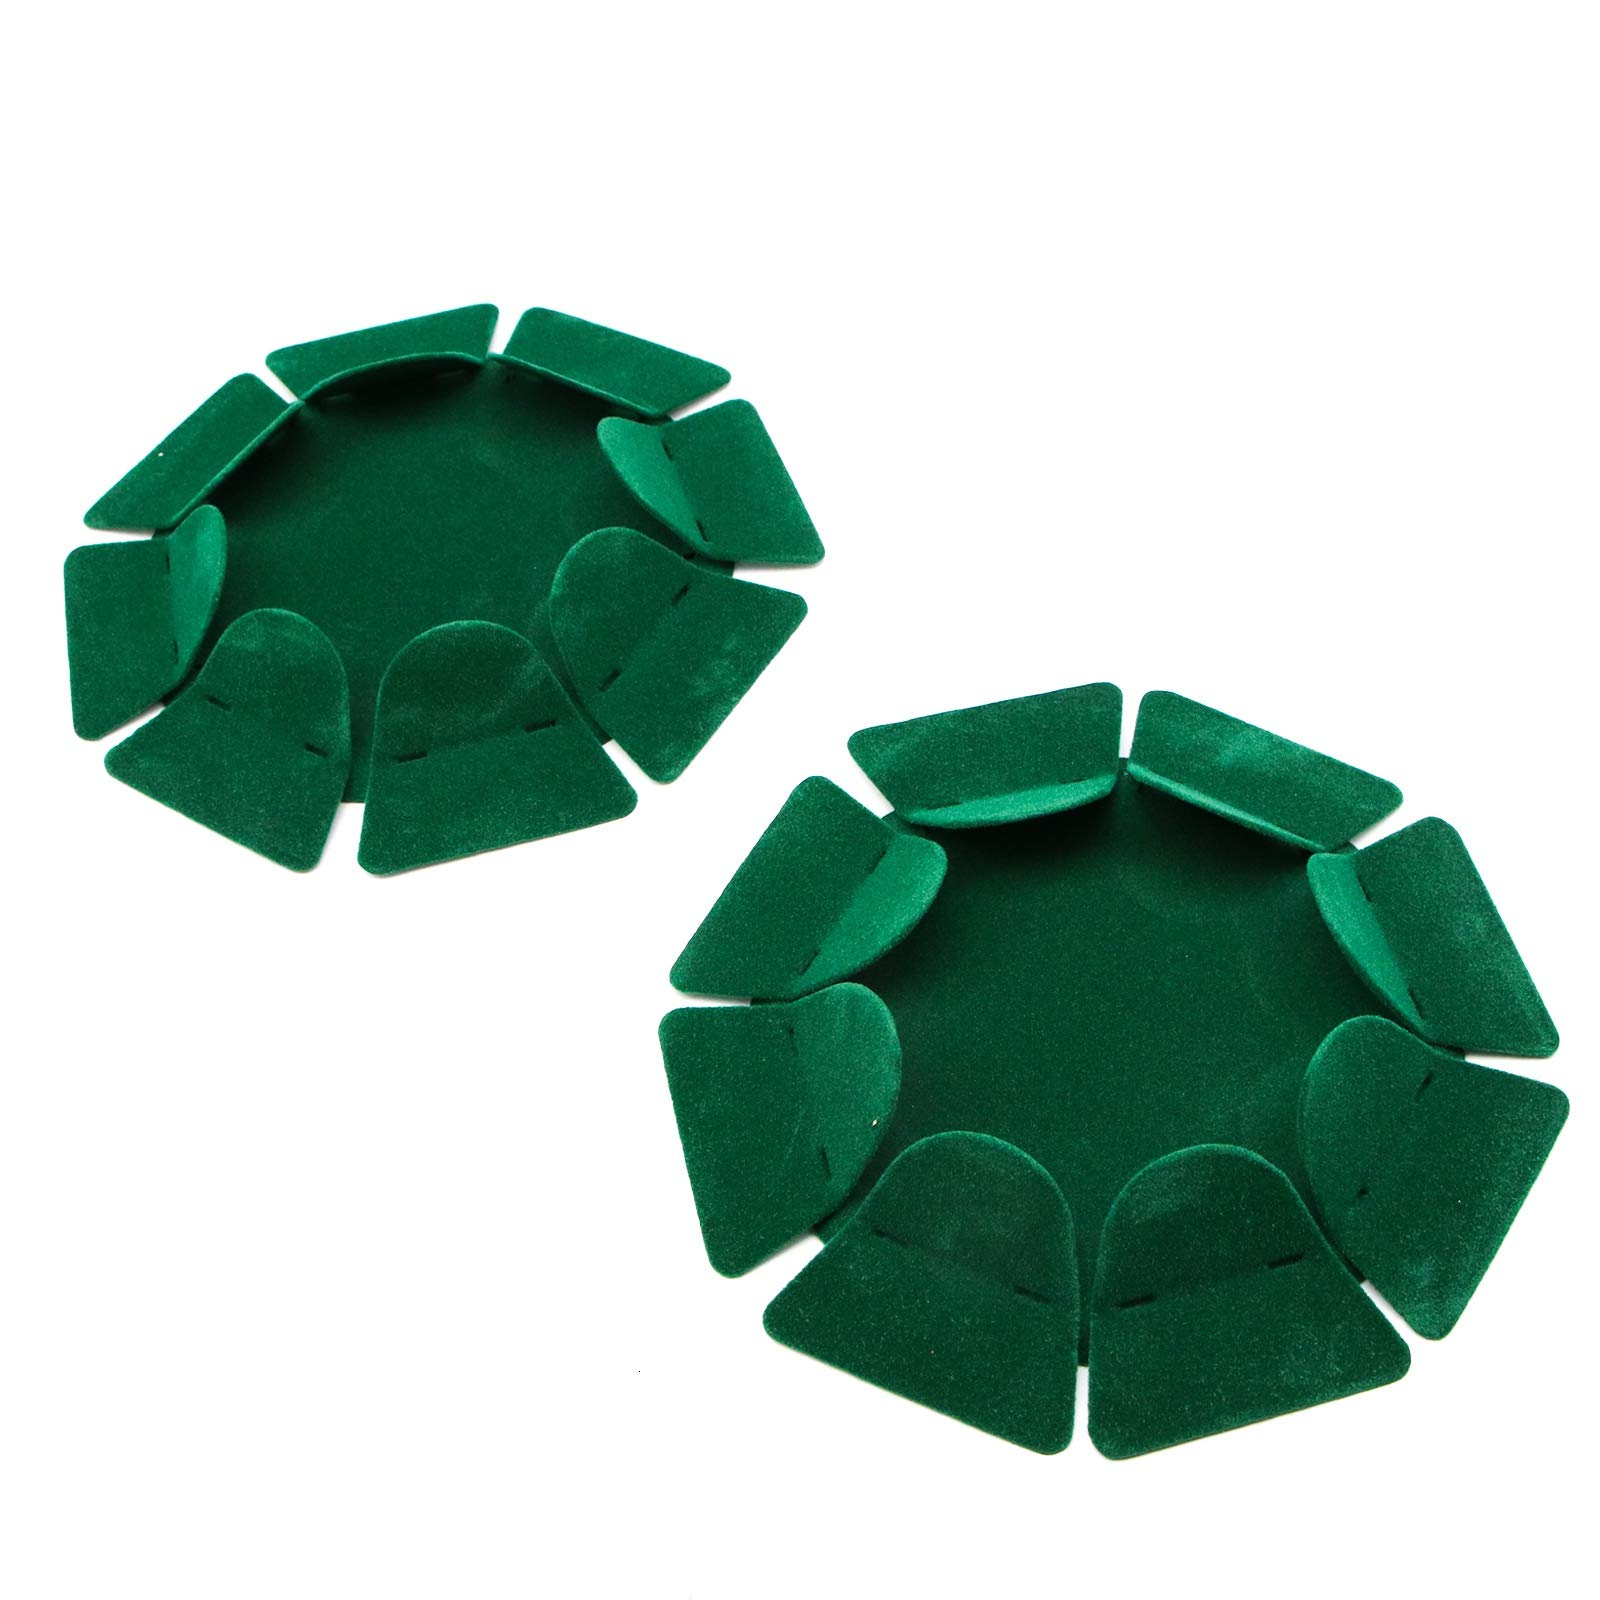 WSSROGY 2 Pcs Golf Training Hole Cup Indoor Outdoor All Direction Golf Practice Putting Cup by WSSROGY